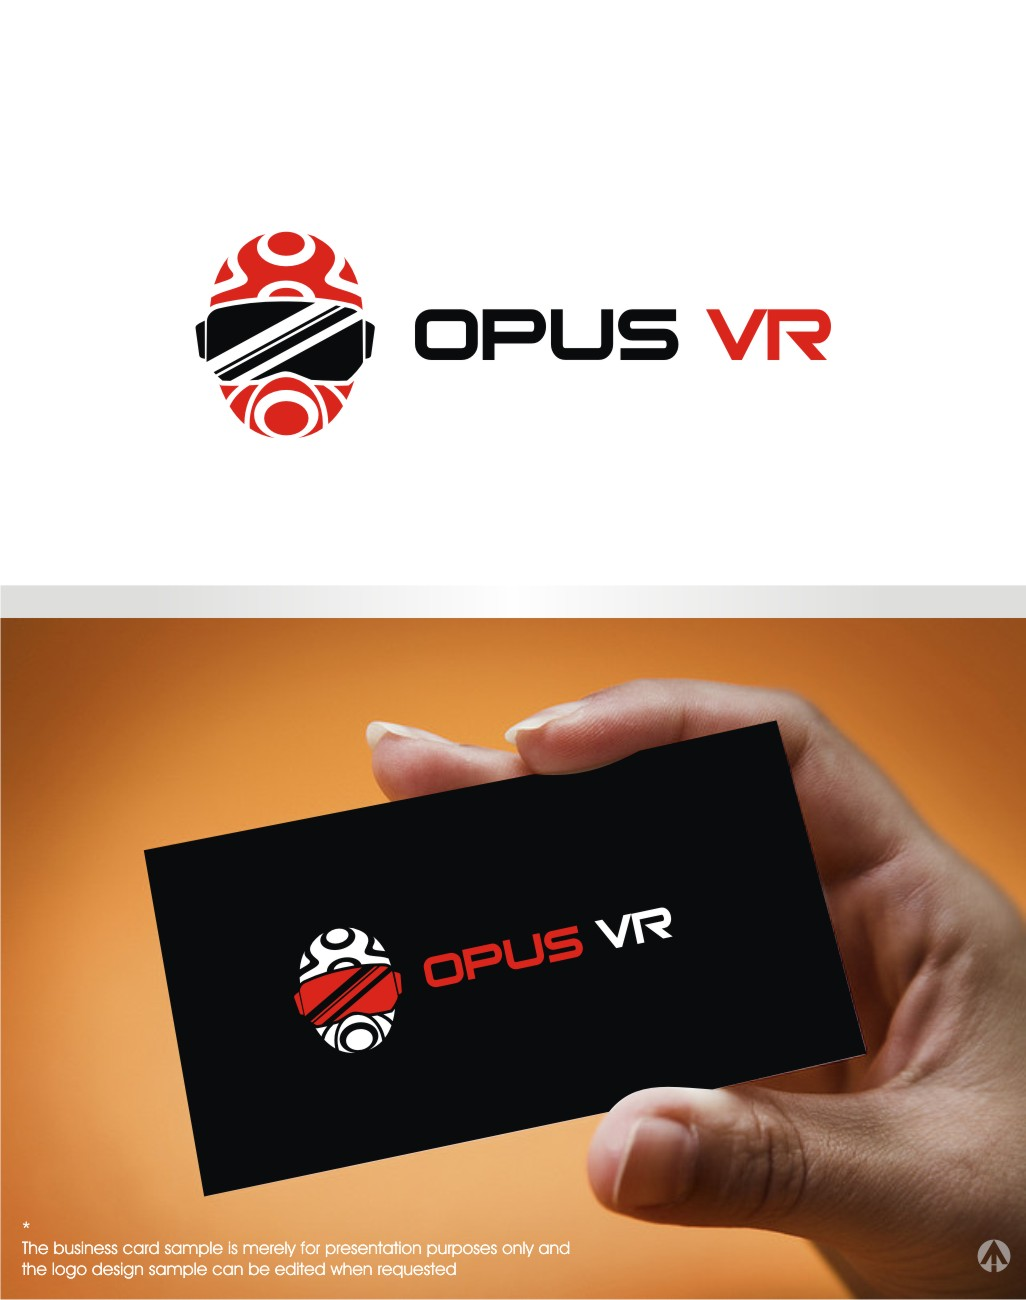 Modern professional software logo design for opus vr by mbaro logo design by mbaro for this project design 9943857 reheart Image collections